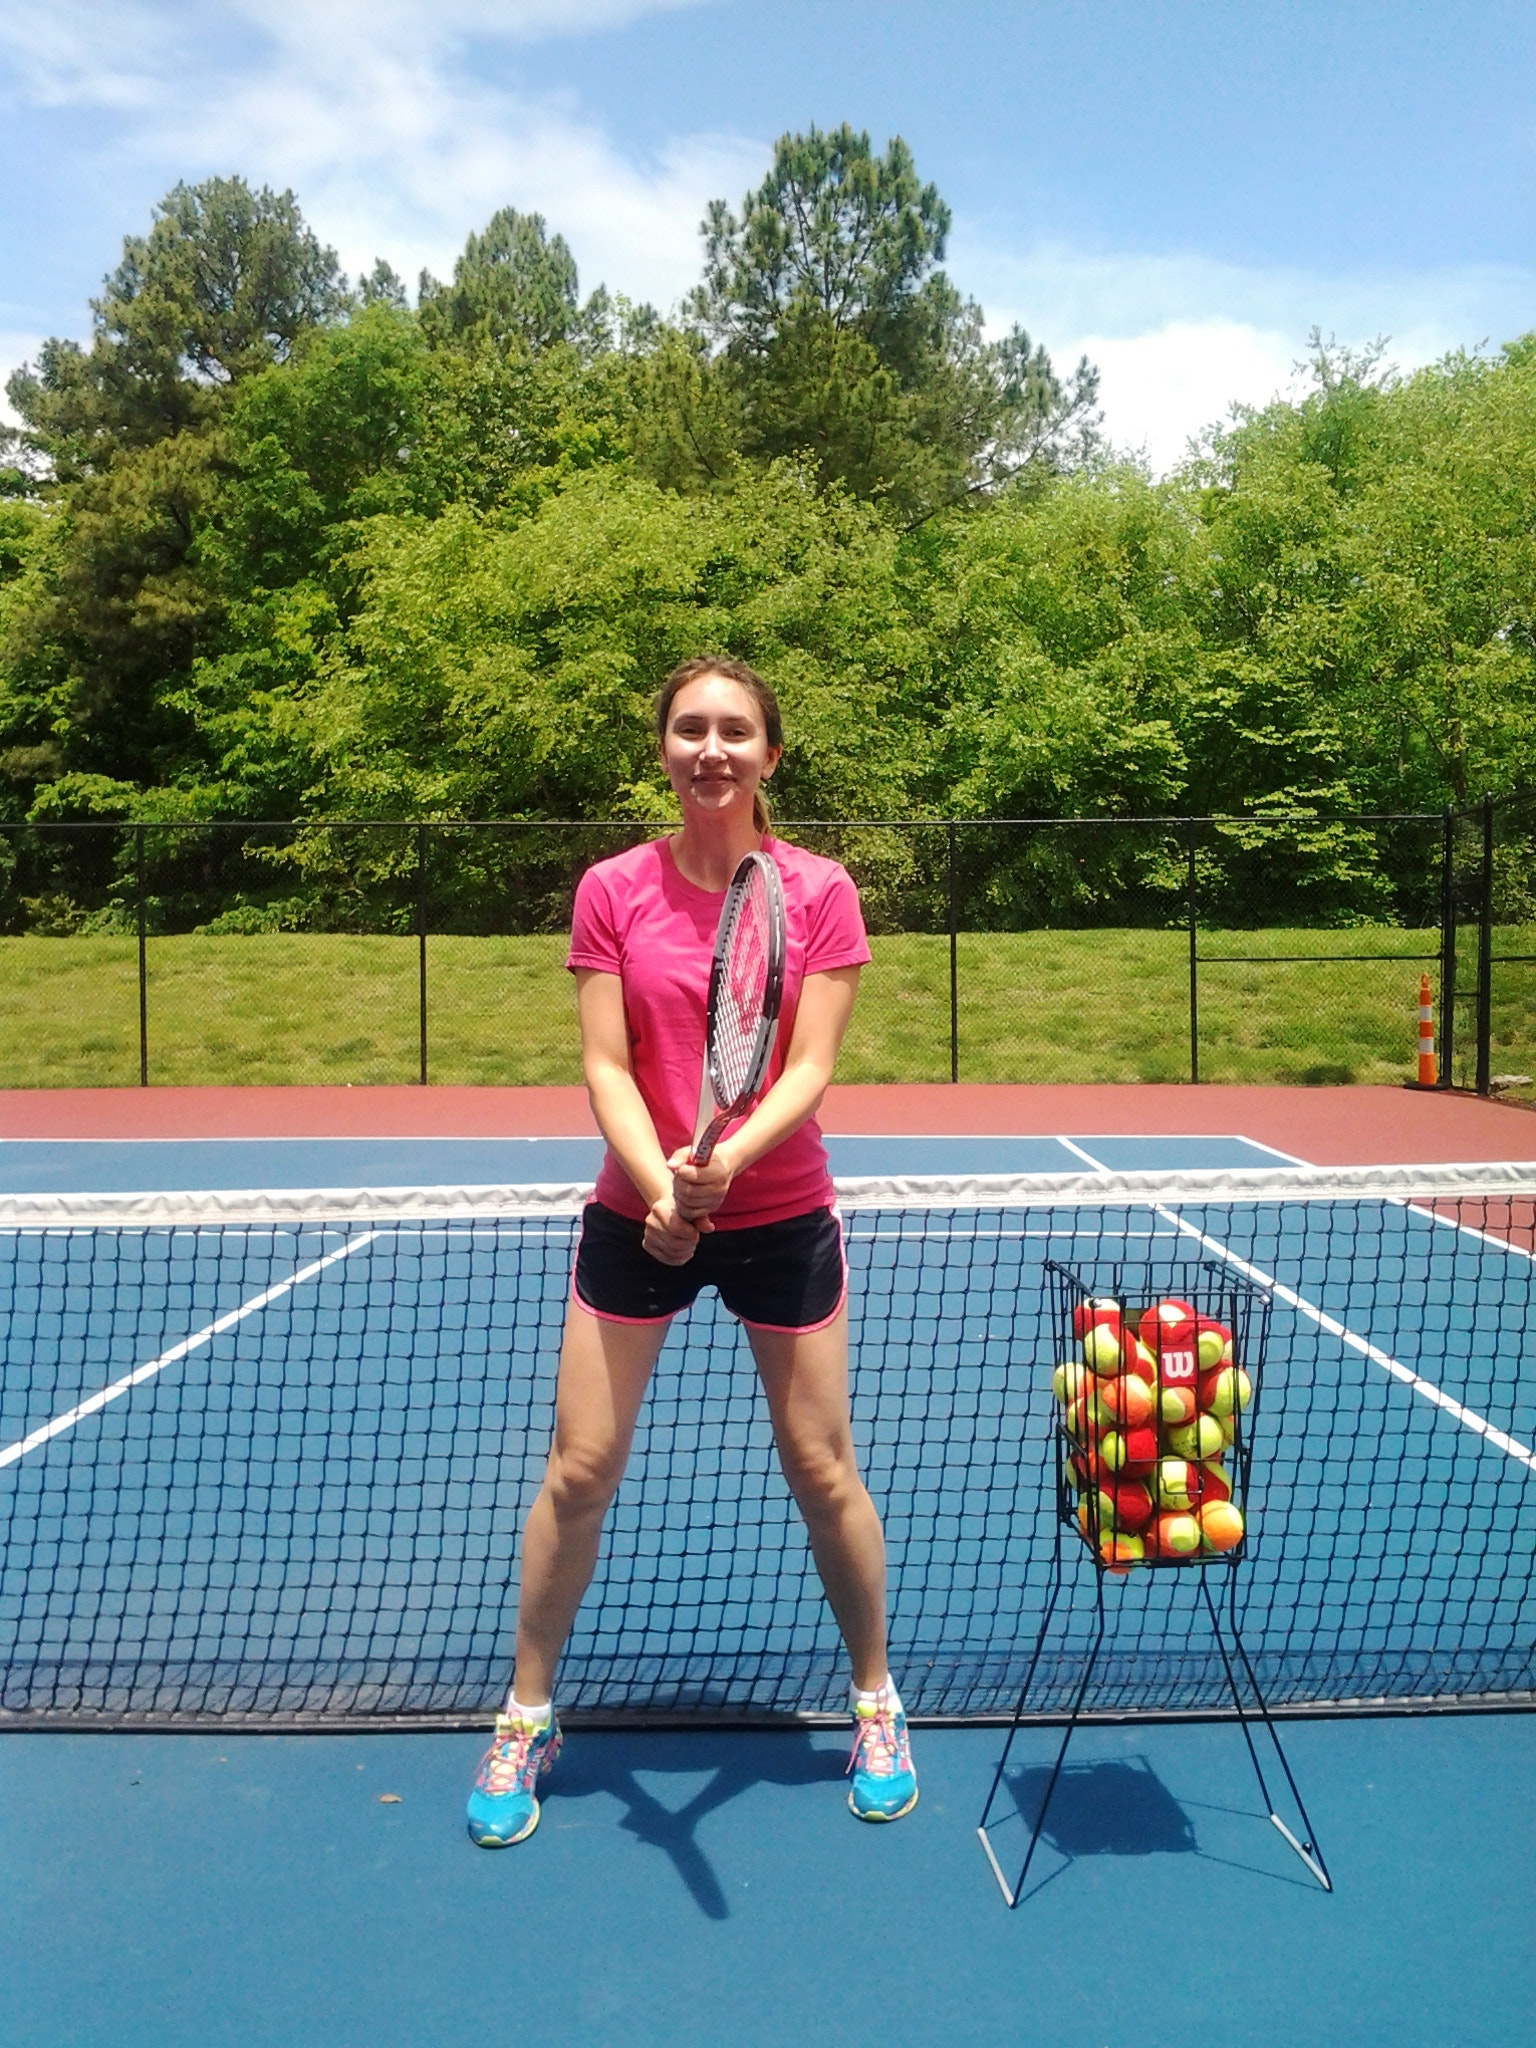 Polina C. teaches tennis lessons in Cary, NC